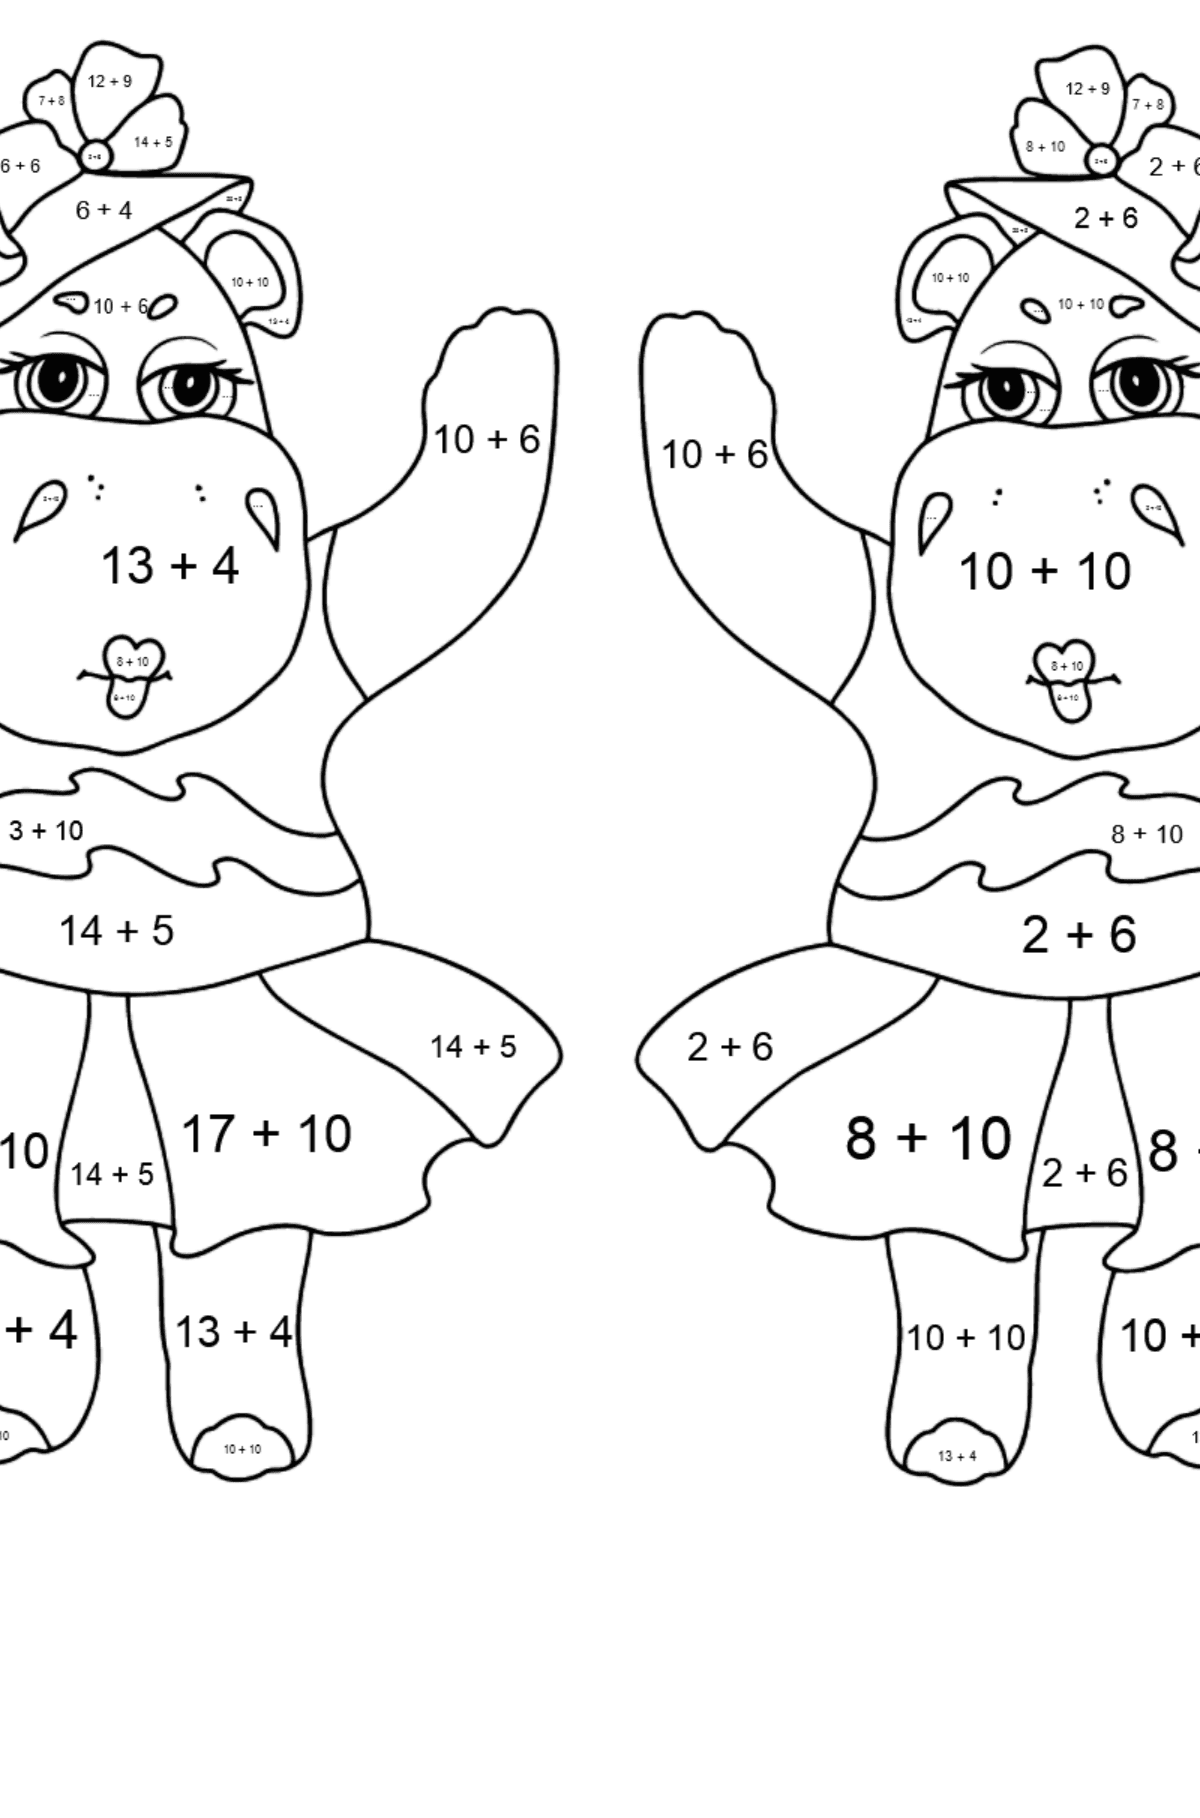 Coloring Page - Hippos are Harvesting the Crops - Math Coloring - Addition for Kids